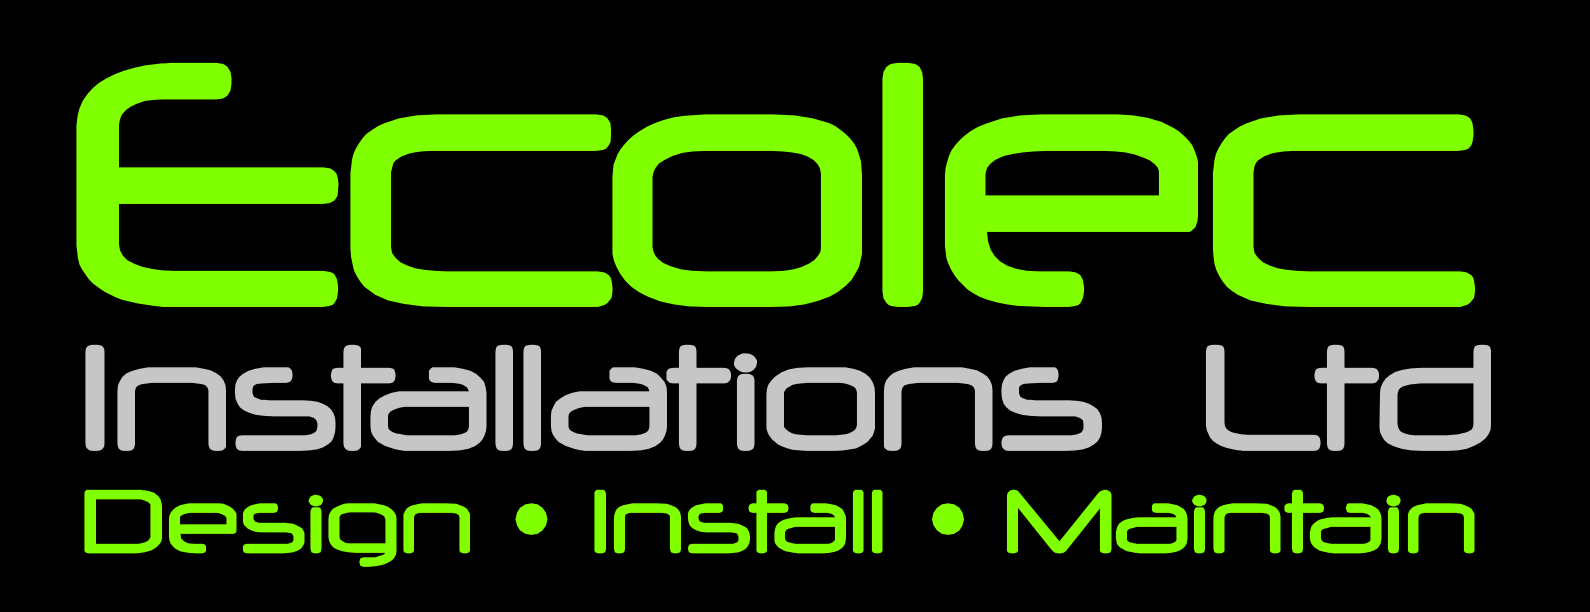 Ecolec Installations Ltd